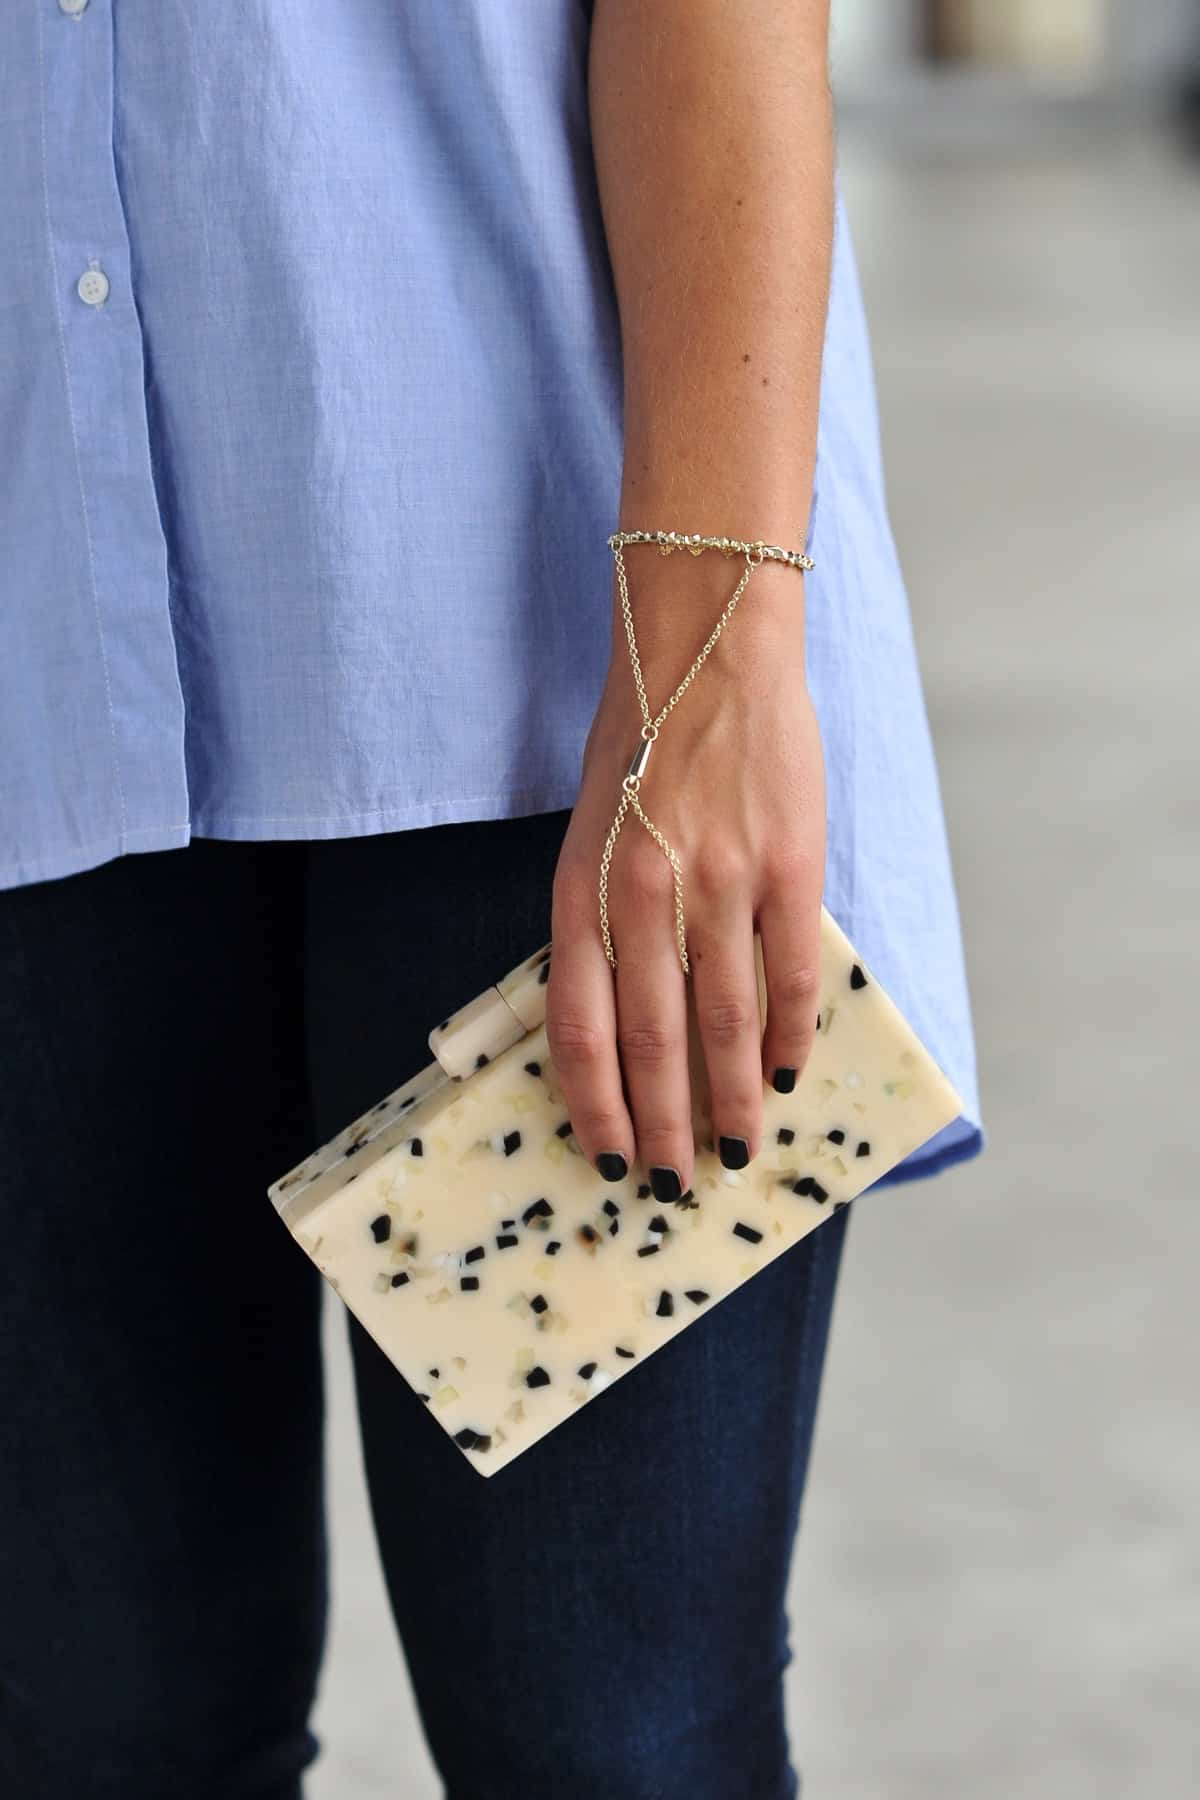 Kendra Scott hand chain, Sole Society Desiree clutch, Madewell Sleeveless Composer Shirt and jeans via @mystylevita , my style vita , fashion blogger